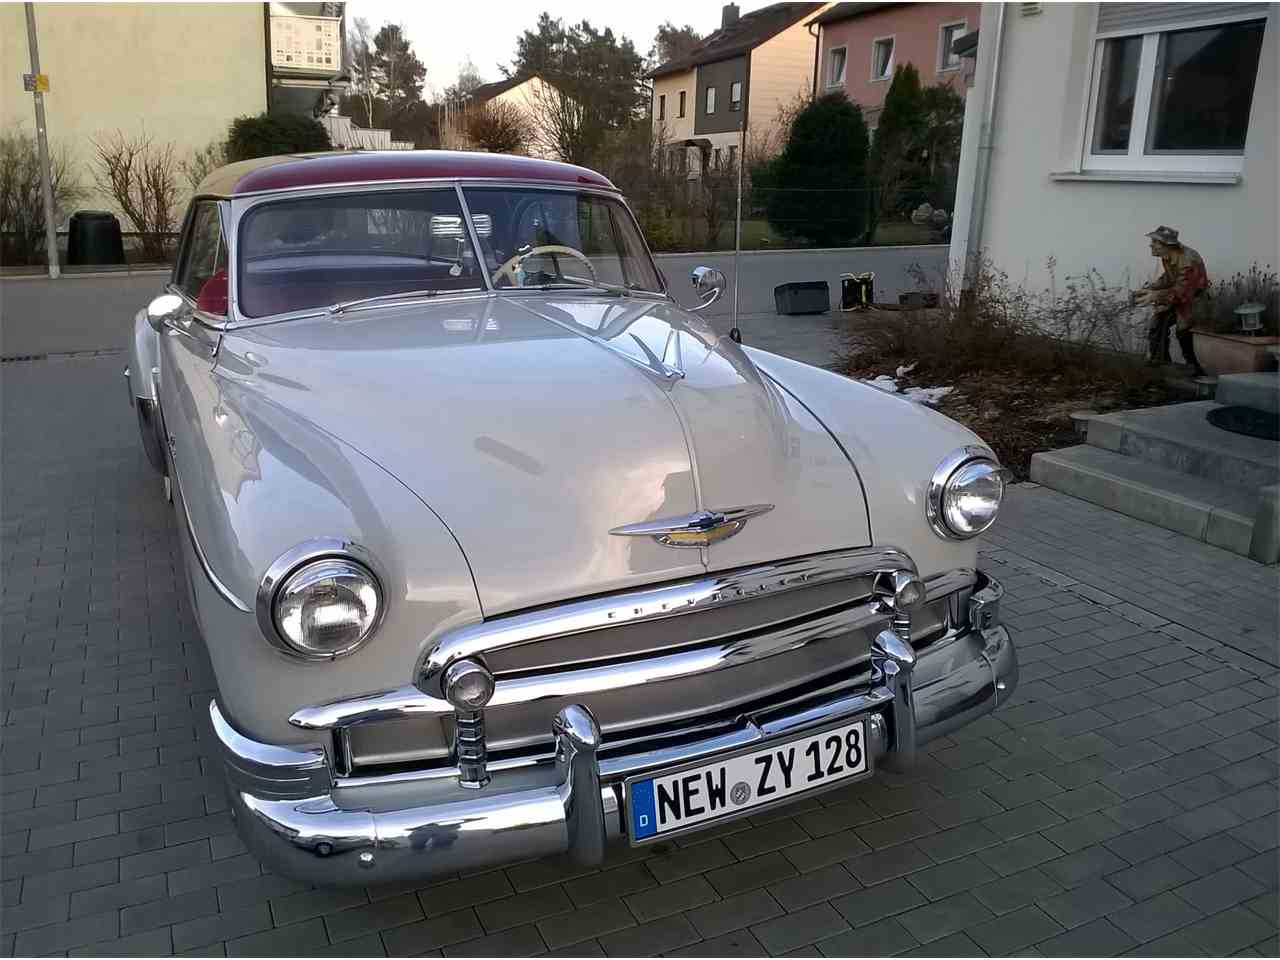 Large Picture of Classic 1950 Chevrolet Bel Air located in Washington - $29,000.00 - G97W